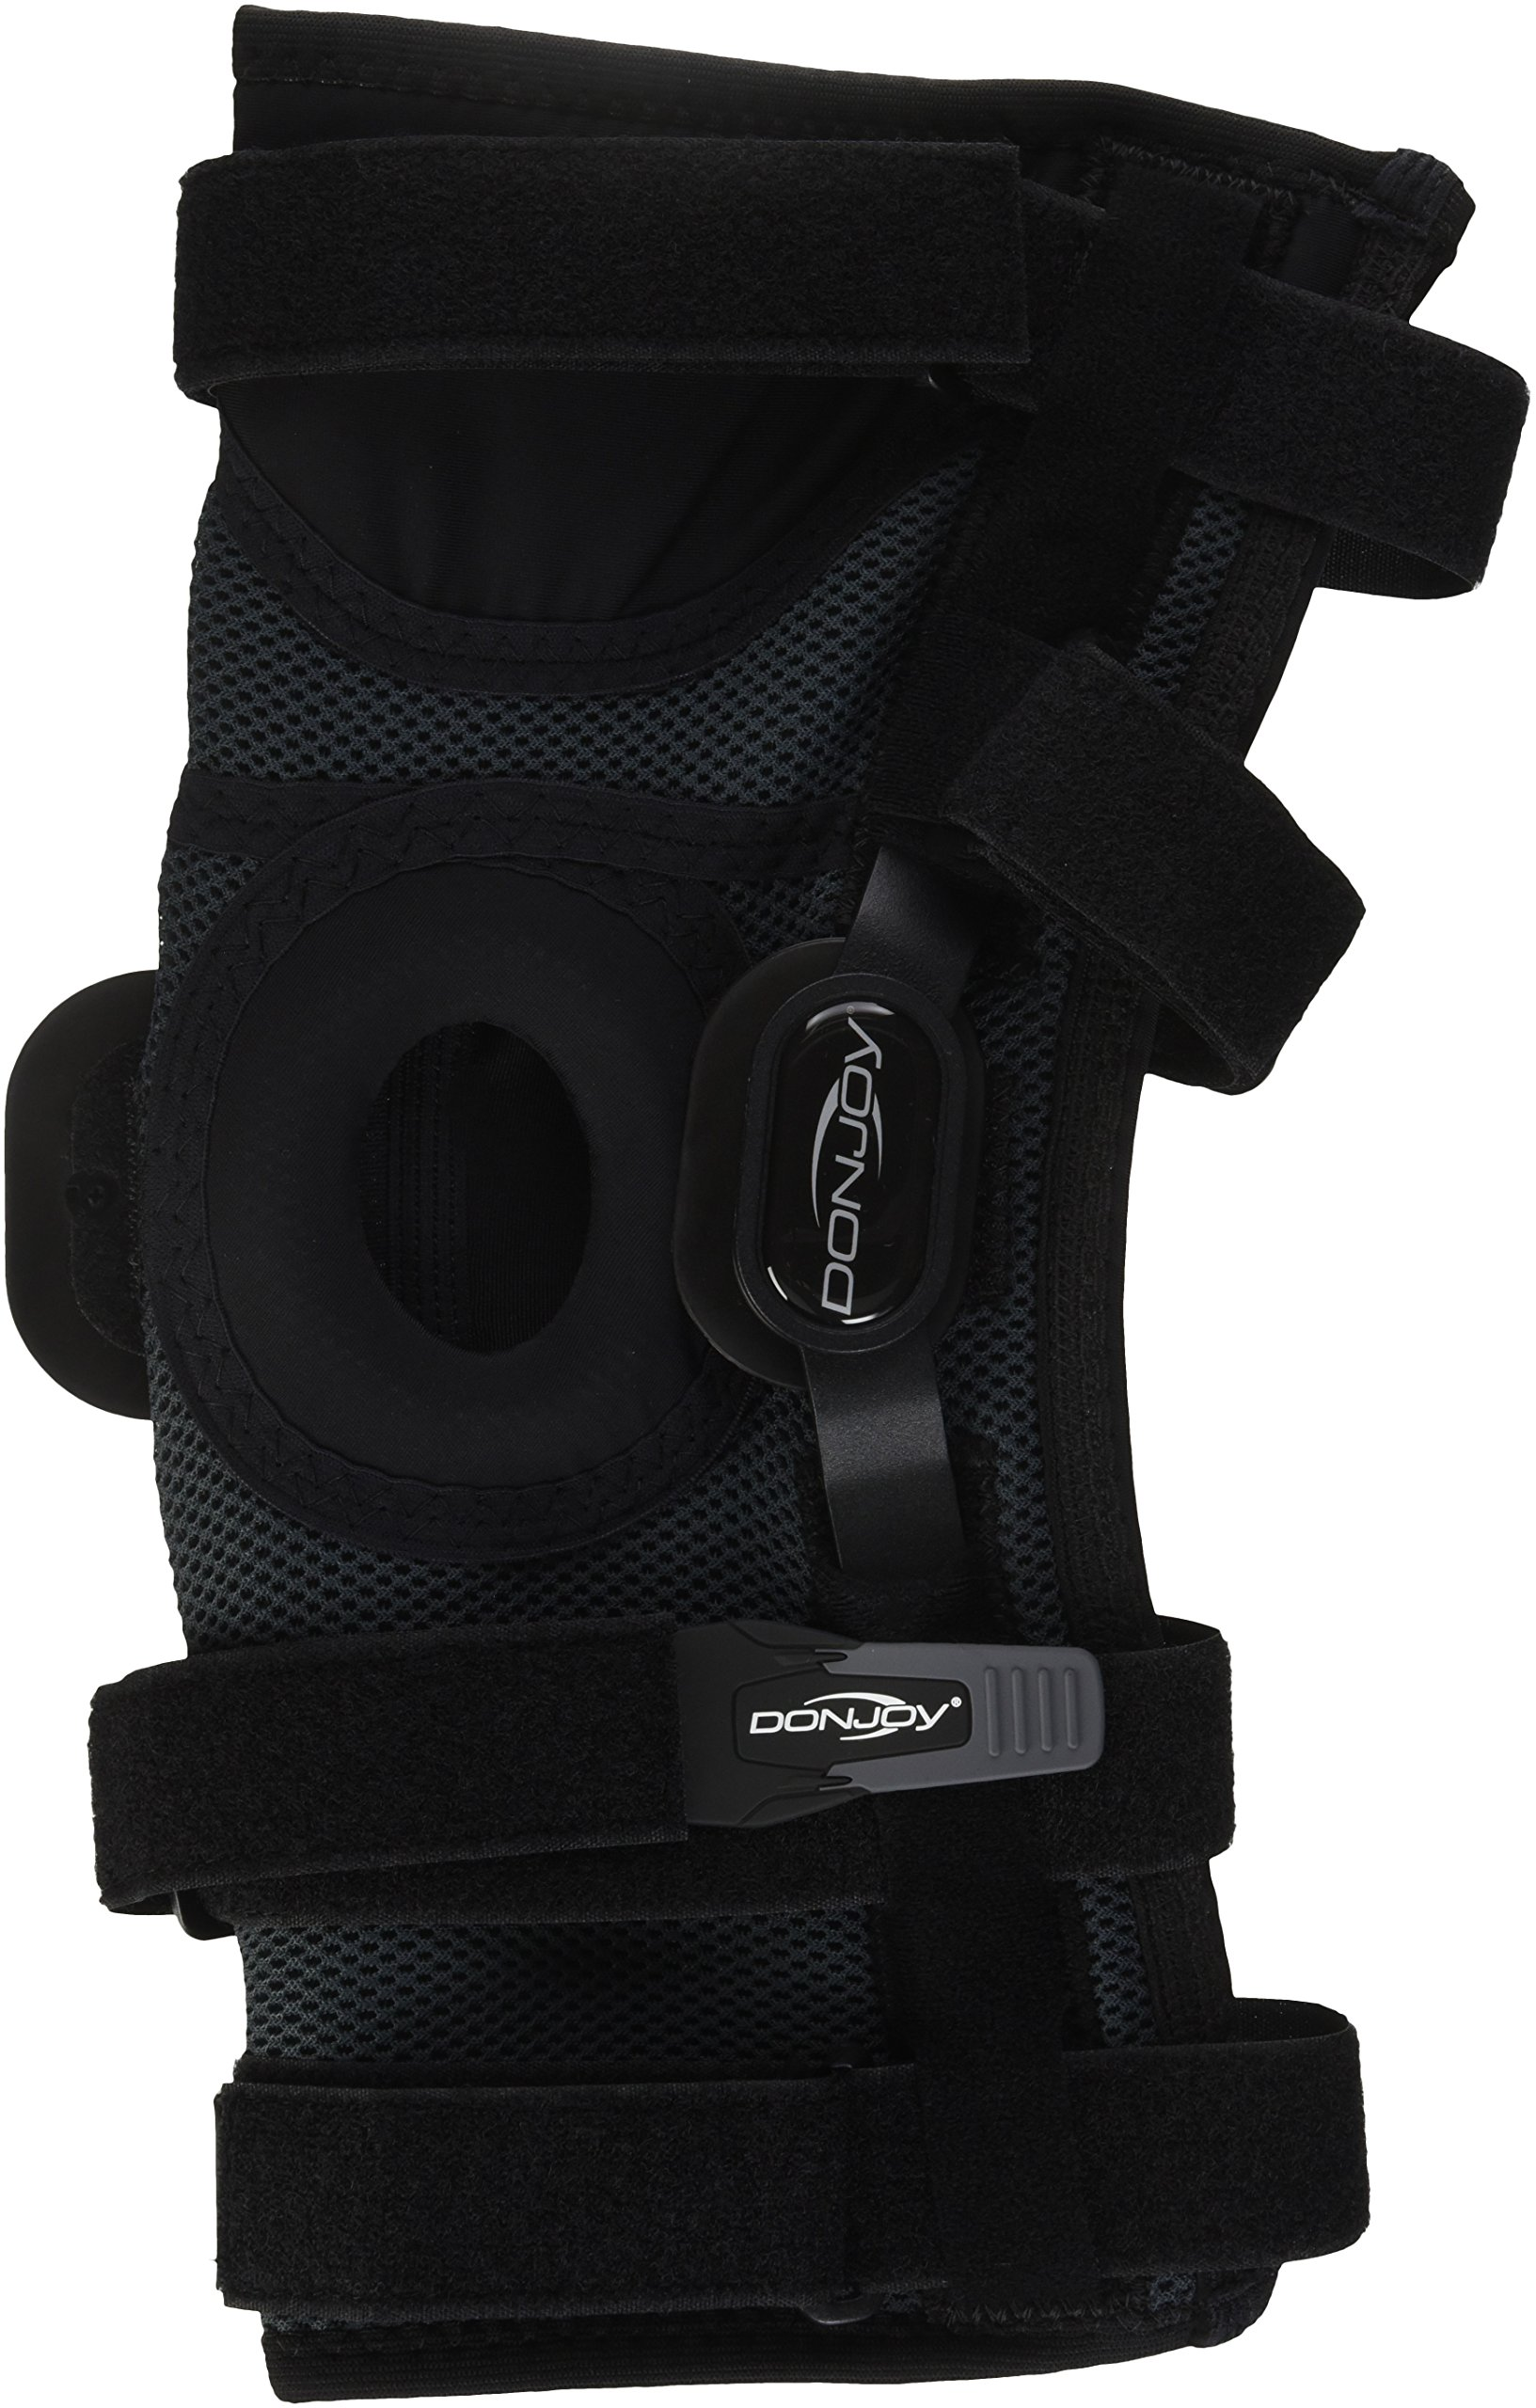 b8900d1e93 DonJoy Playmaker II Knee Support Brace with Patella Donut: Spacer Sleeve,  Large